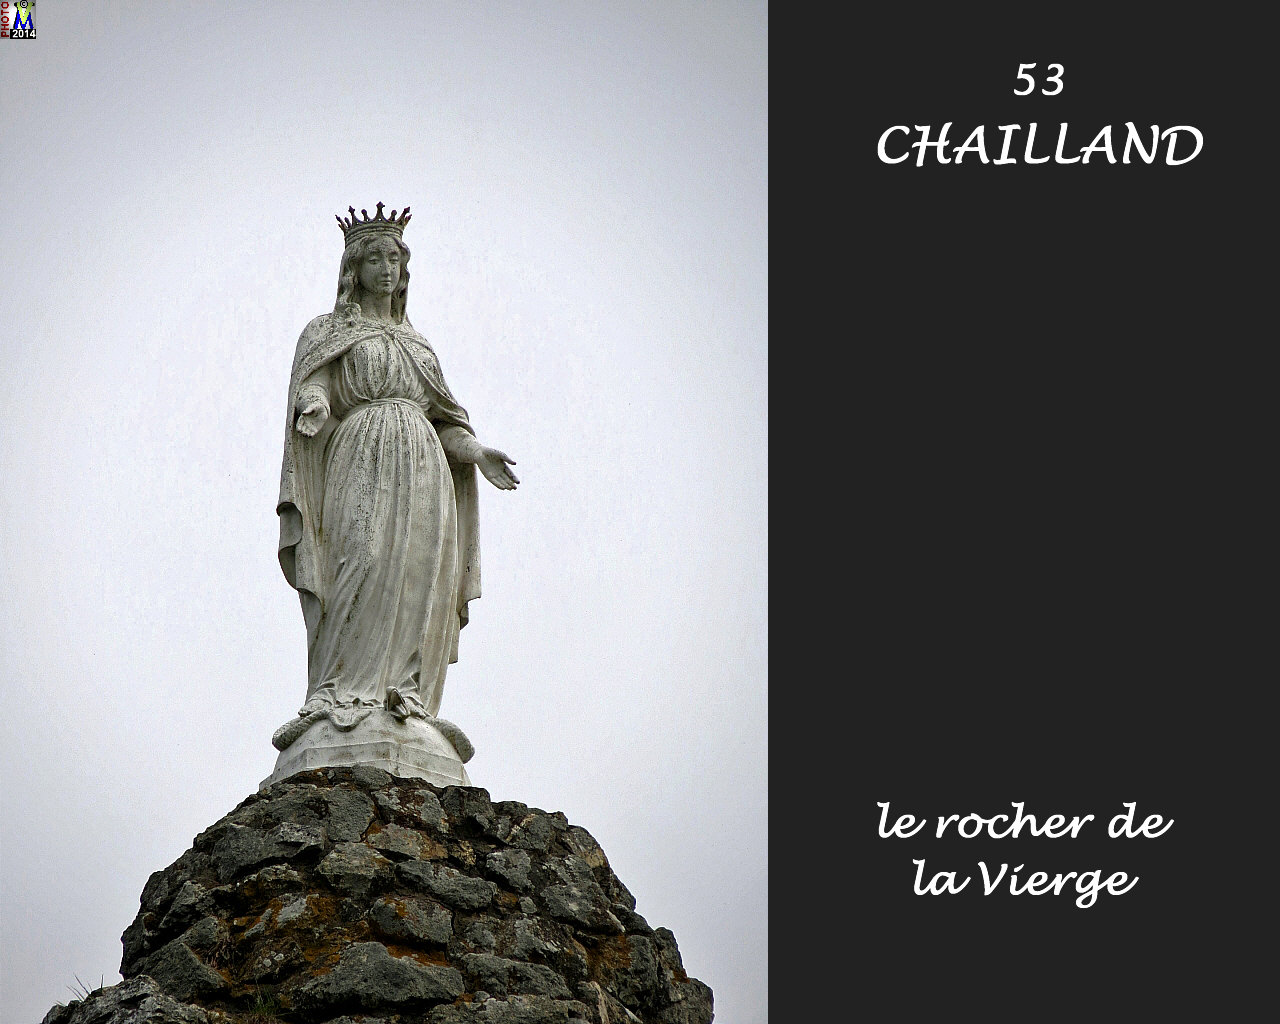 53CHAILLAND_rocherVierge_108.jpg